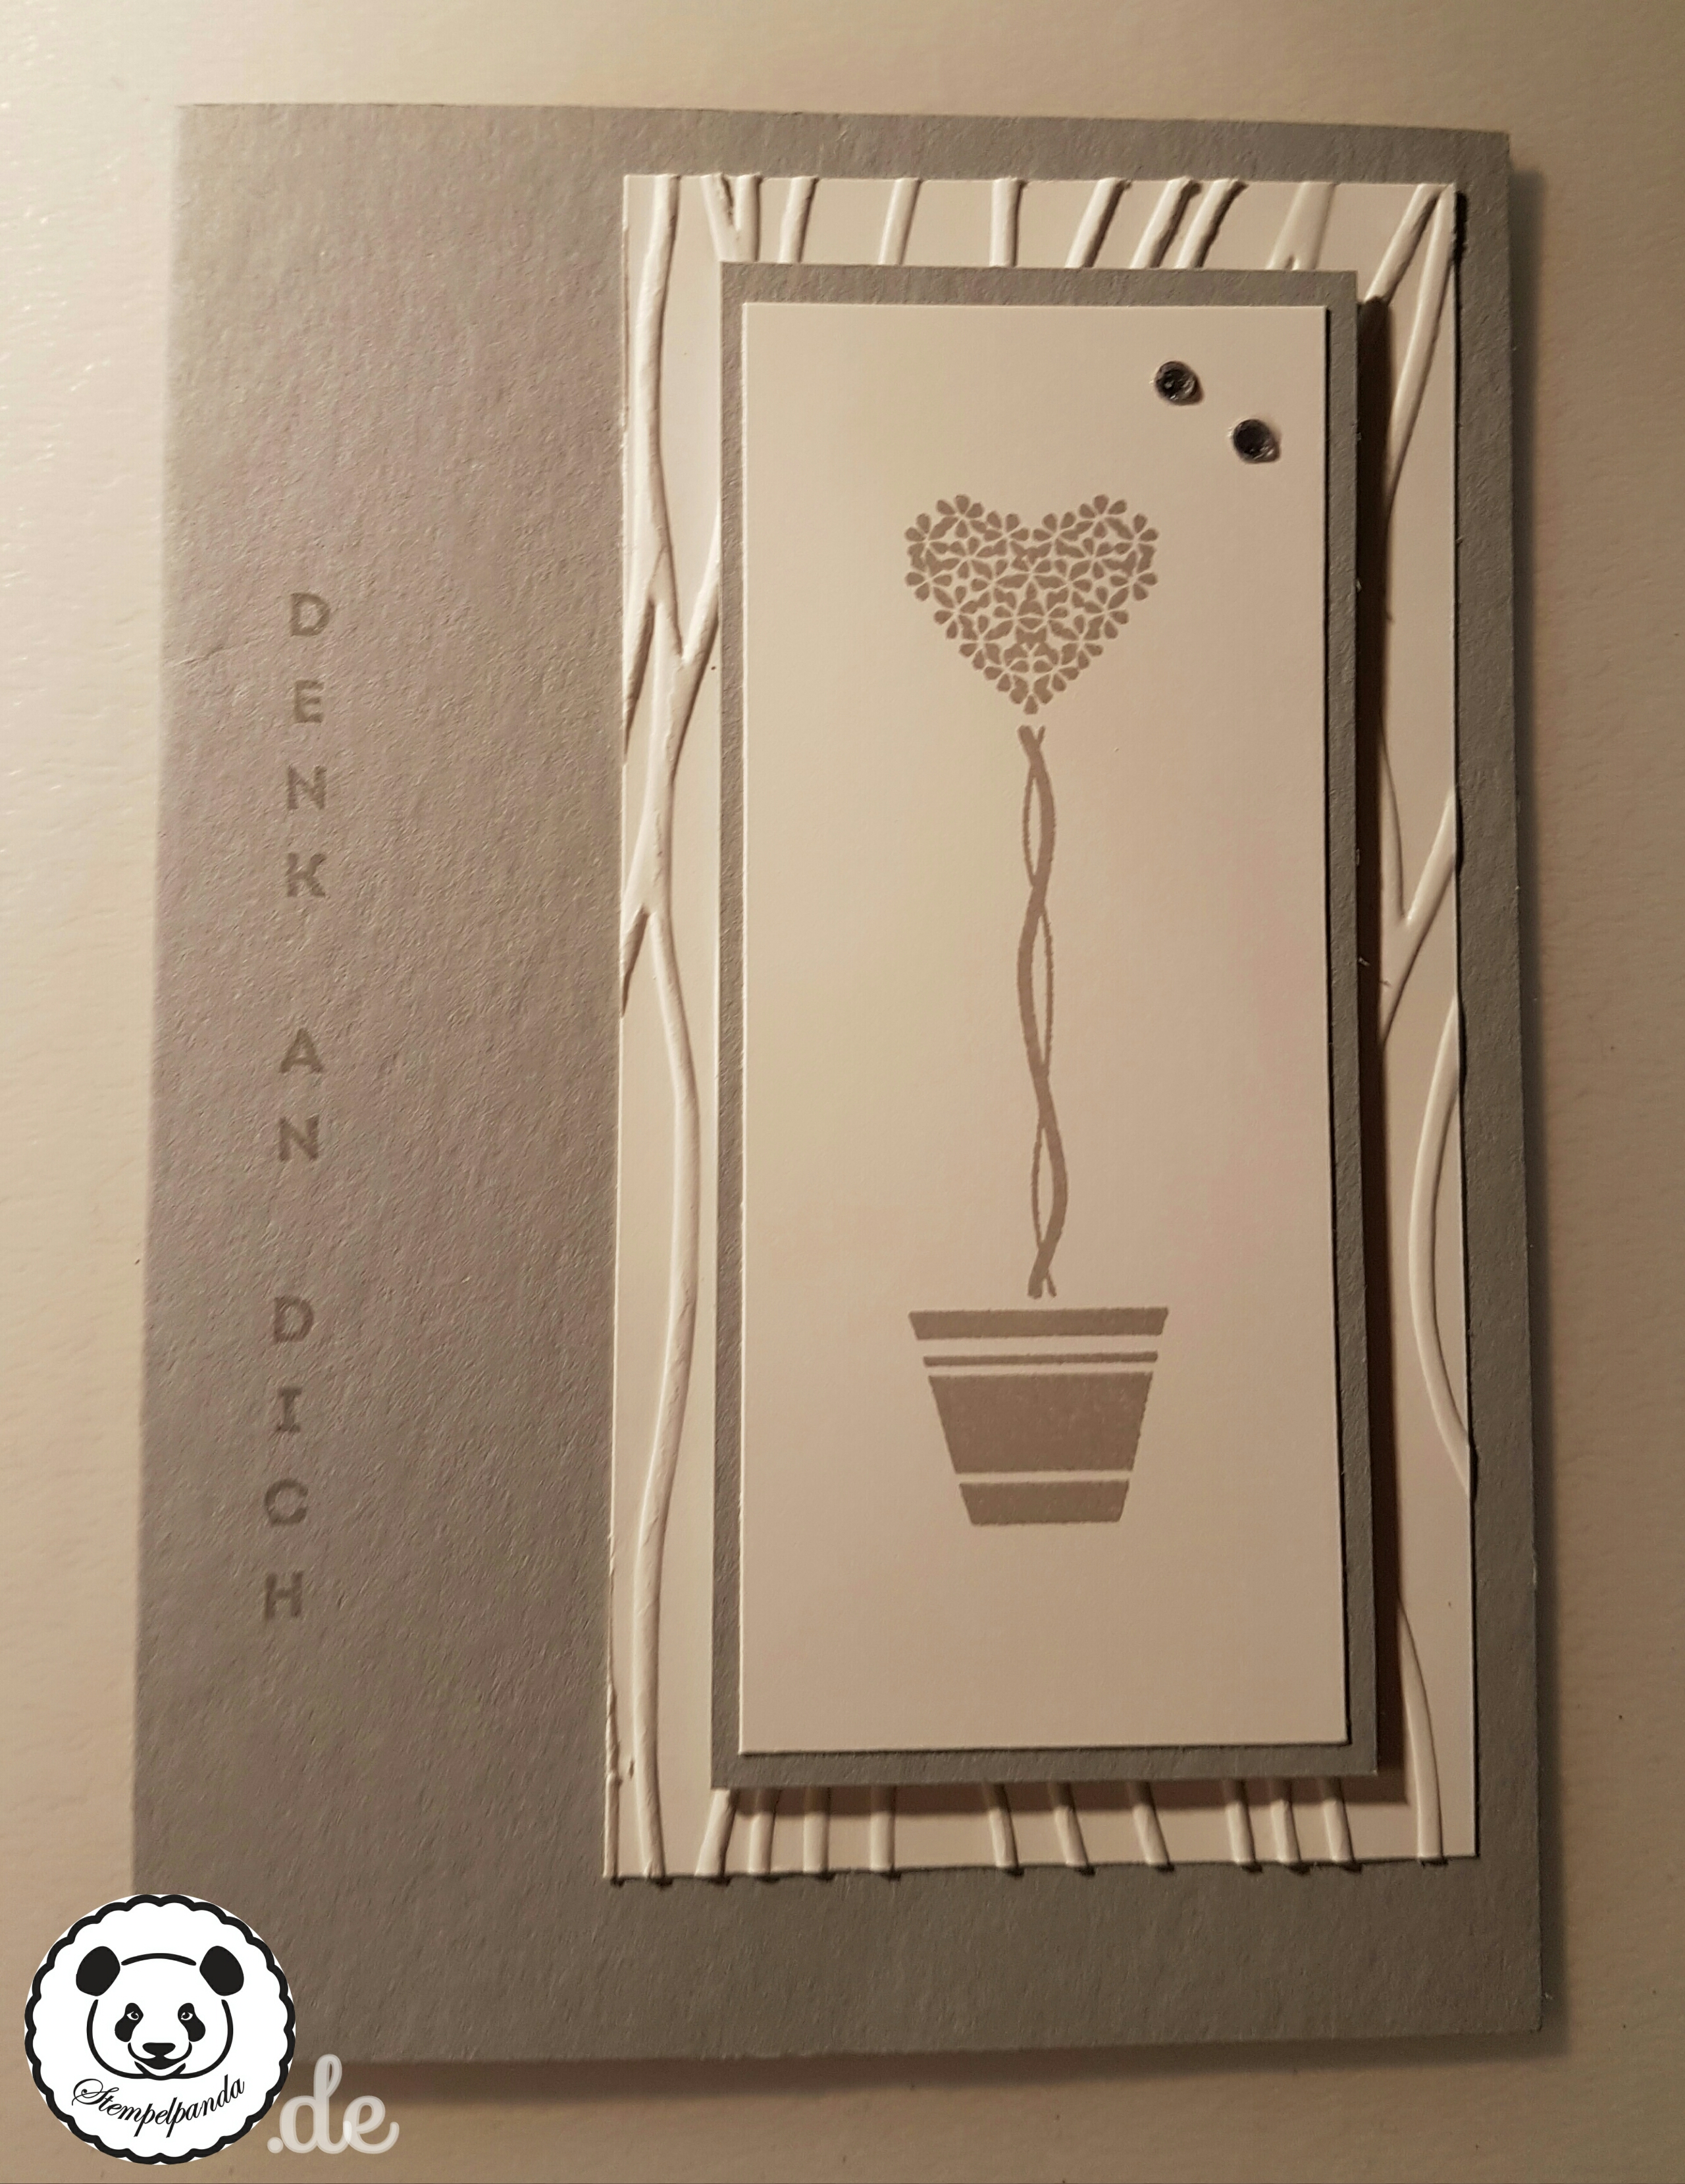 Stampin up, SU, Genial vertikal, Vertical Greetings, Prägeform Wellen